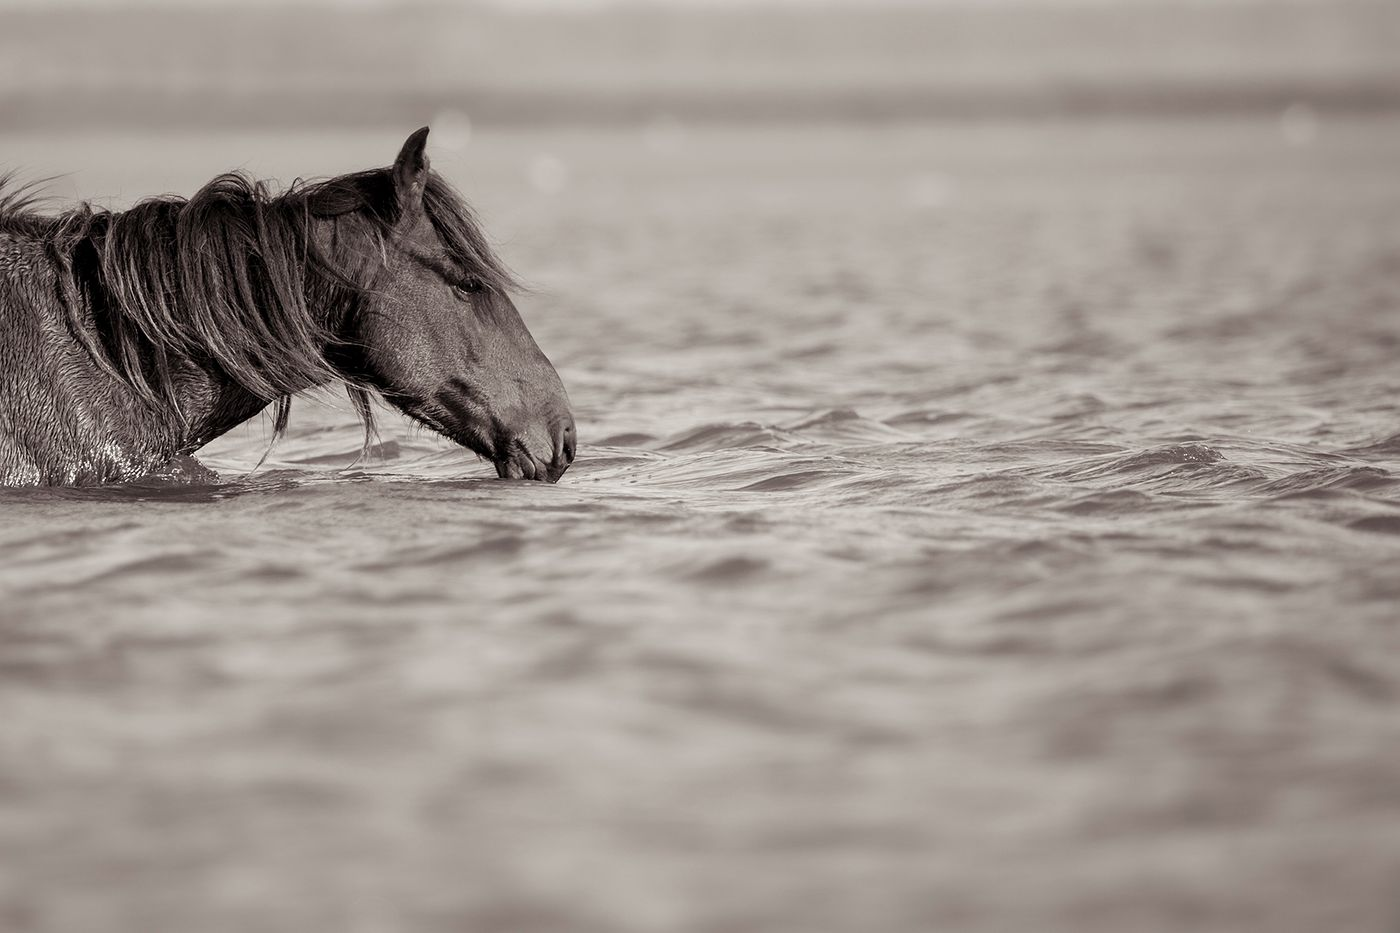 the Water Horse